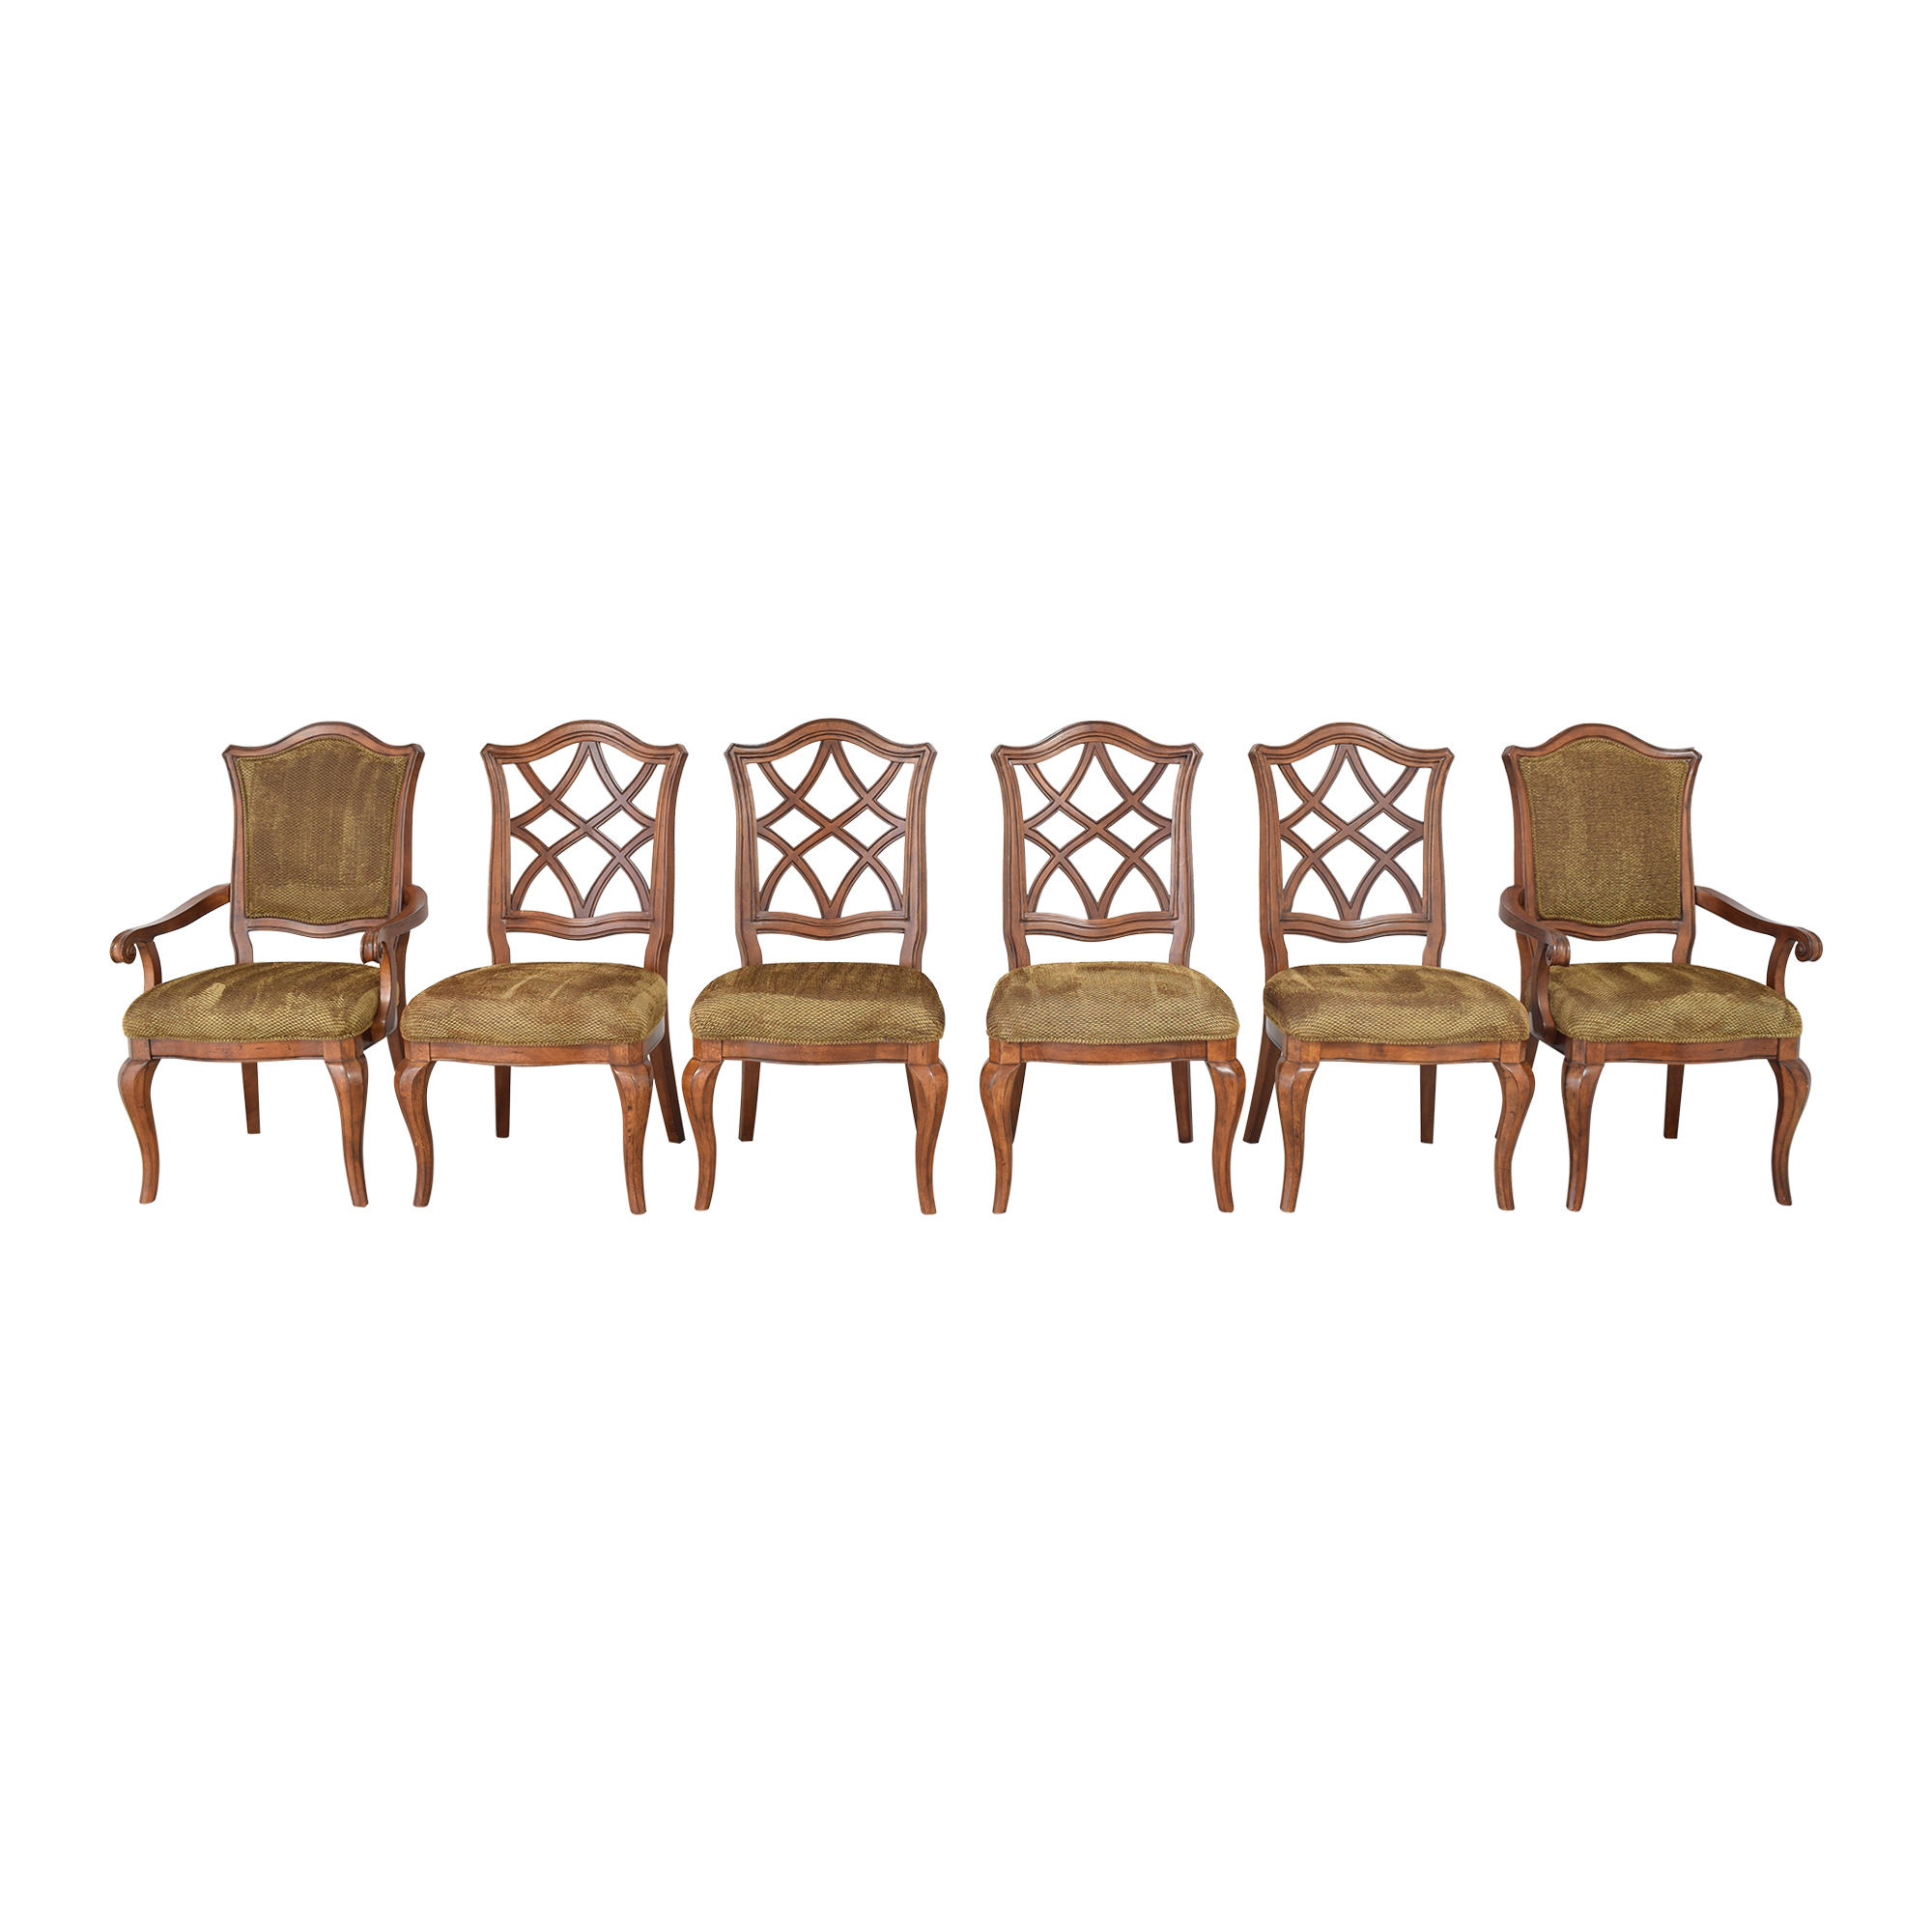 Schnadig Schnadig Dining Chairs for sale